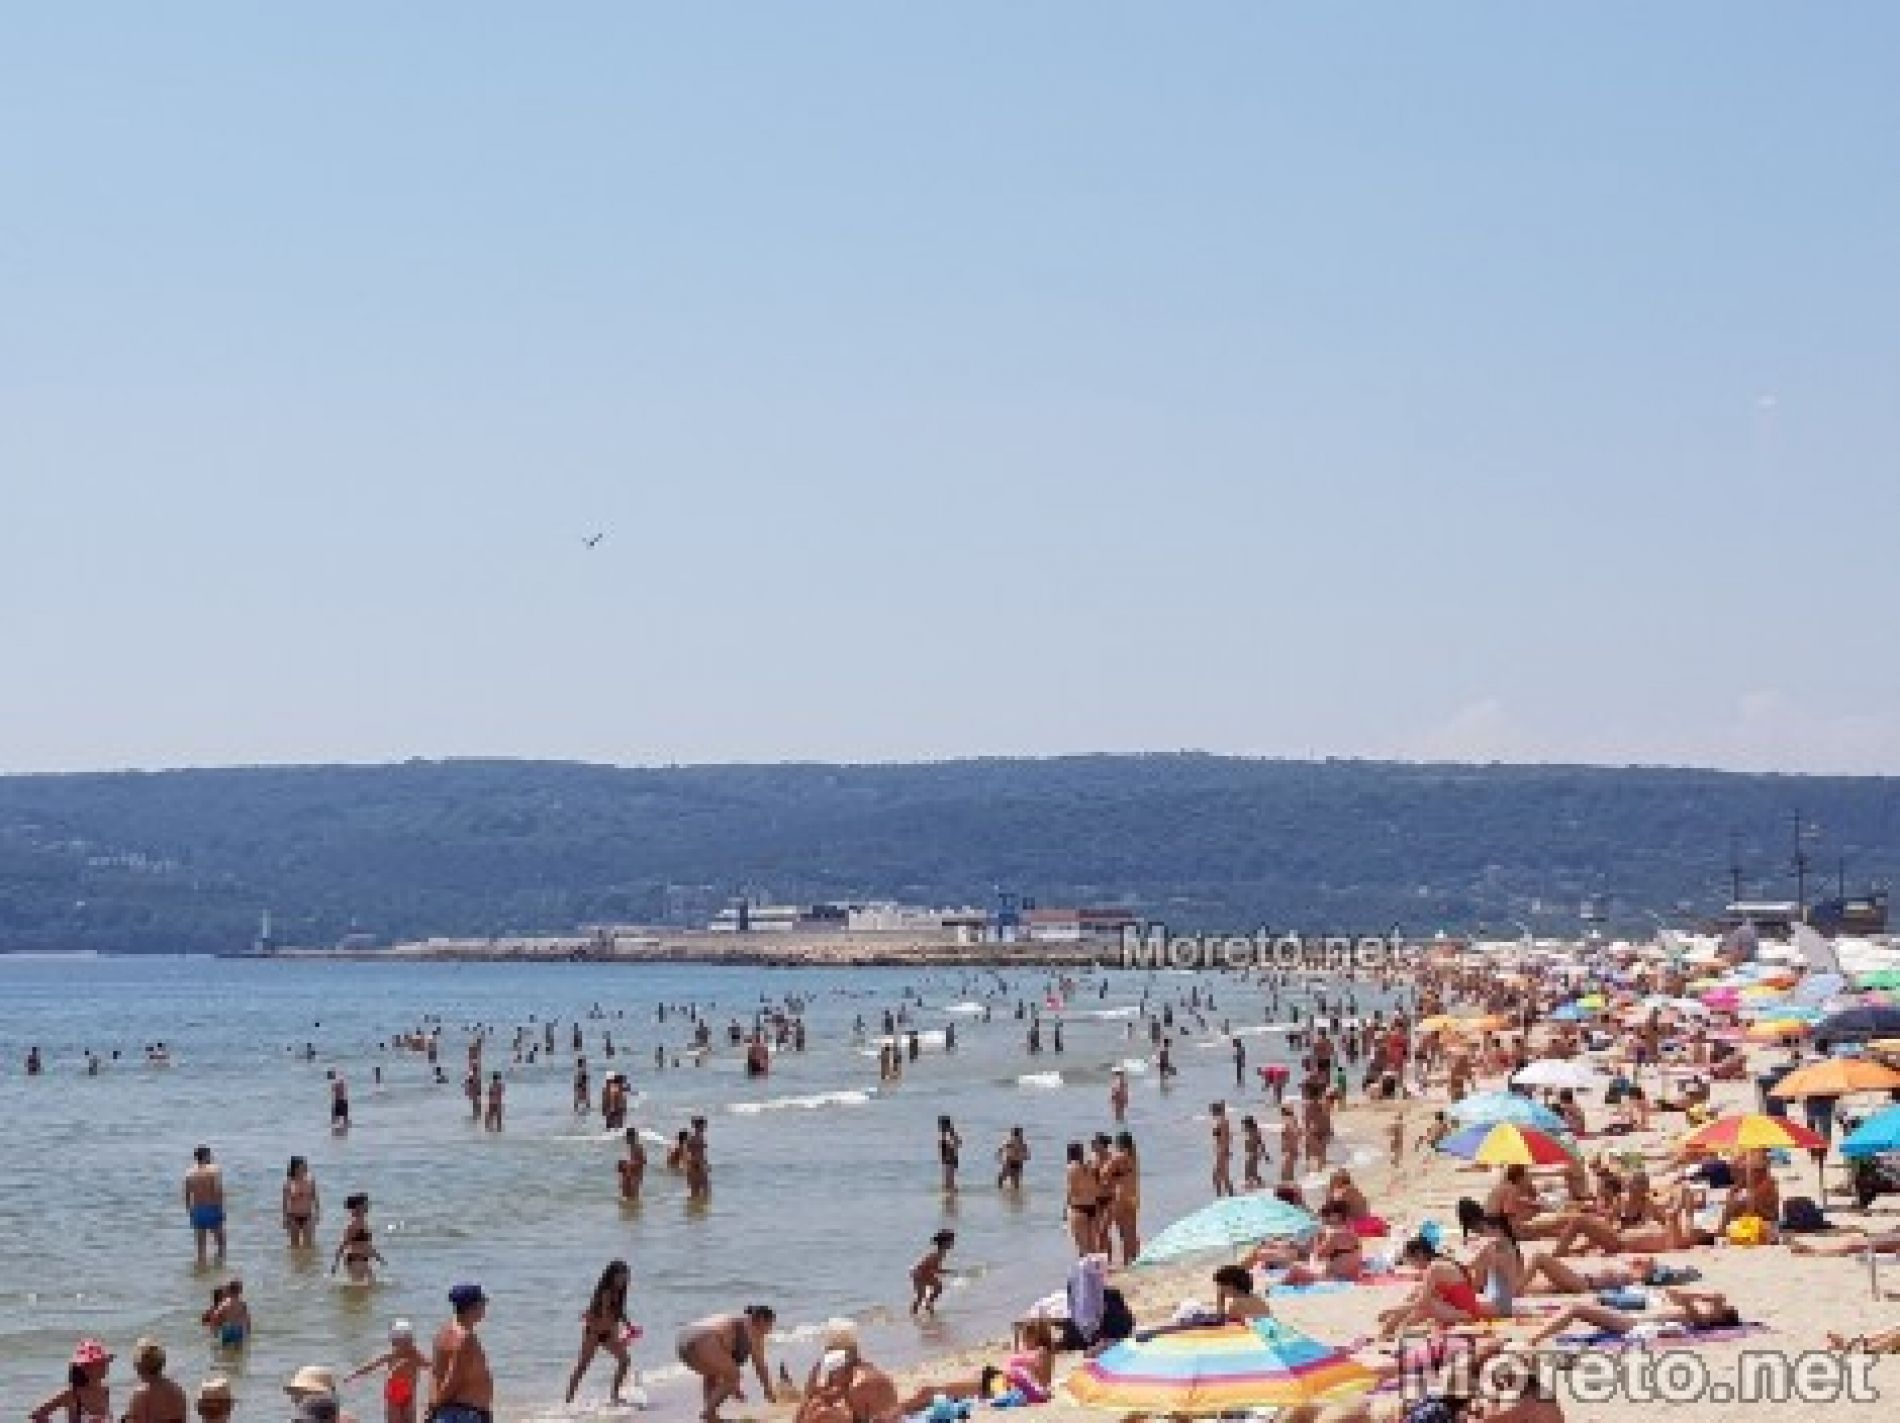 Nessebar is the most preferred destination for Bulgarians, Varna is in second place.